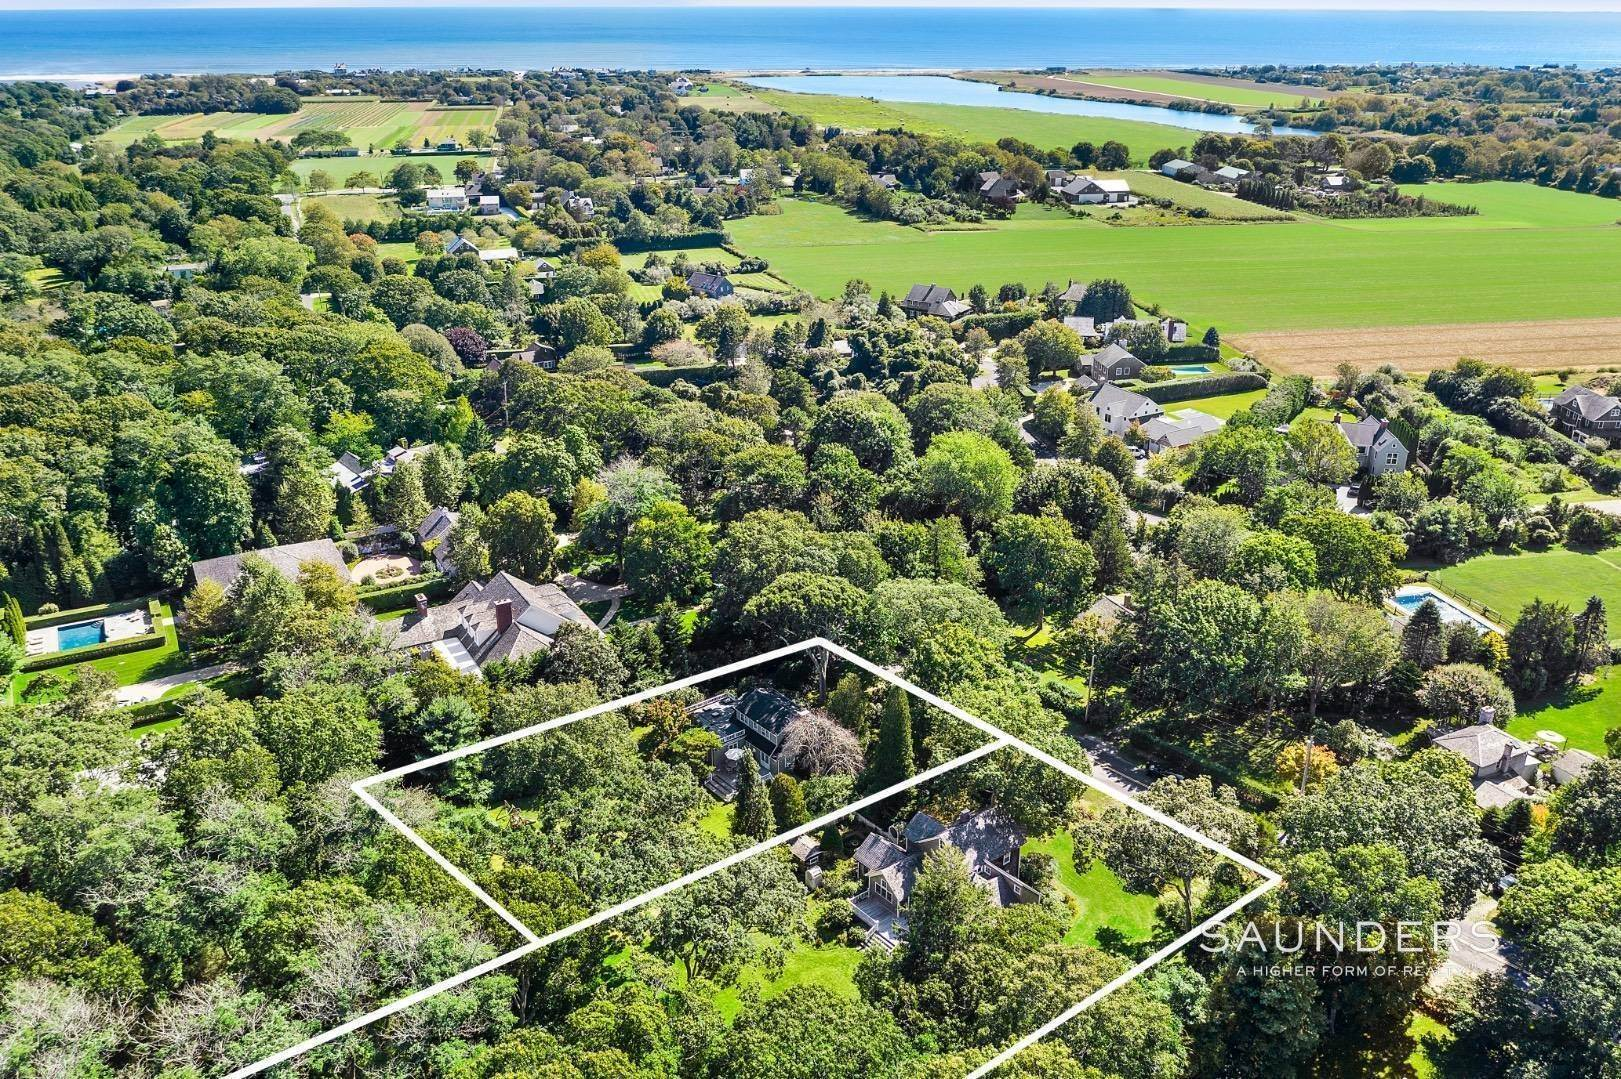 8. Single Family Homes for Sale at Sayres Path 2 Acre Opportunity 129 Sayres Path, Wainscott, East Hampton Town, NY 11937